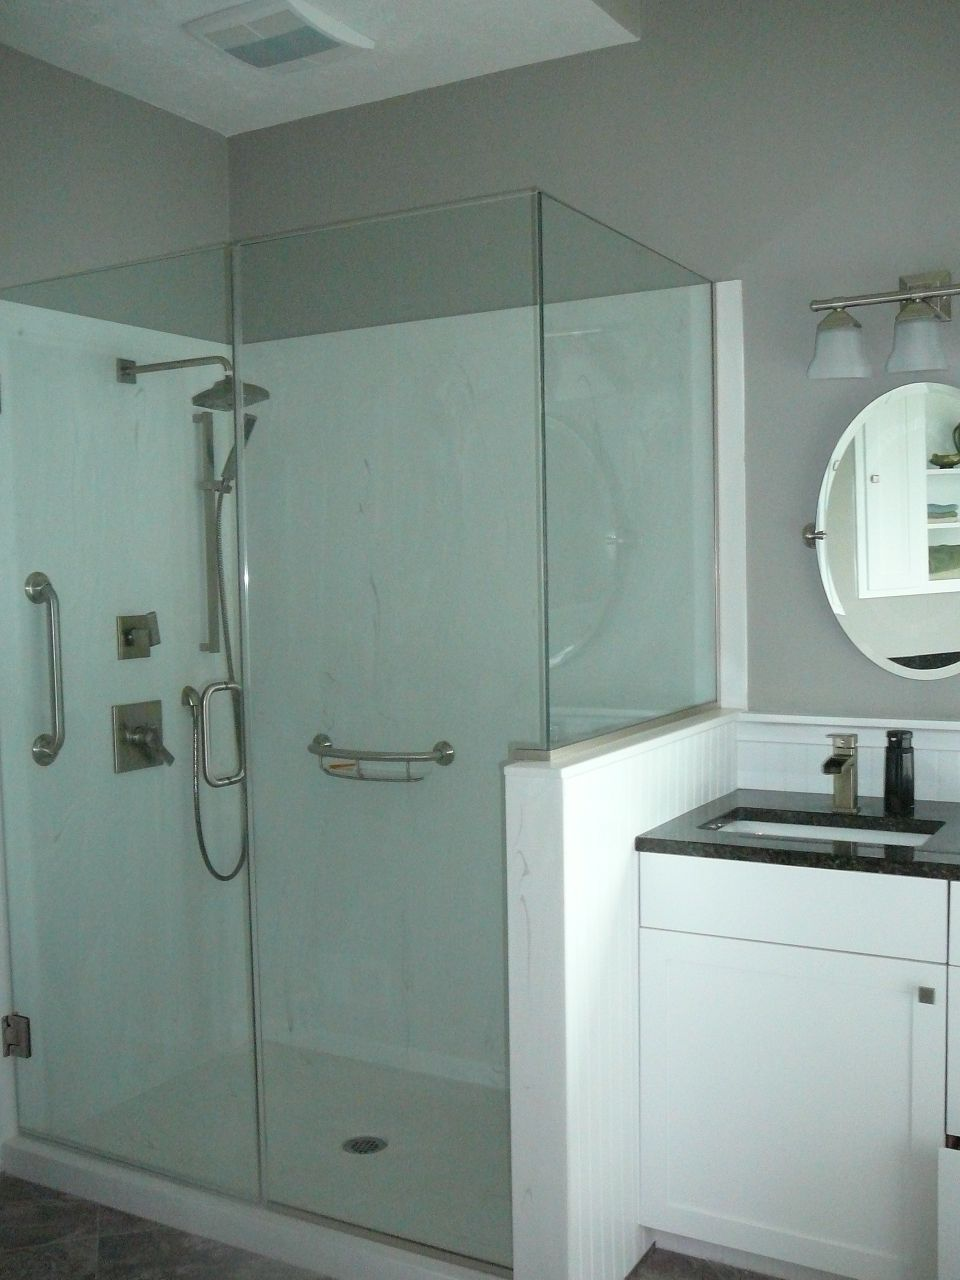 We just redid our bathroom...to make it more user-friendly (handicap ...